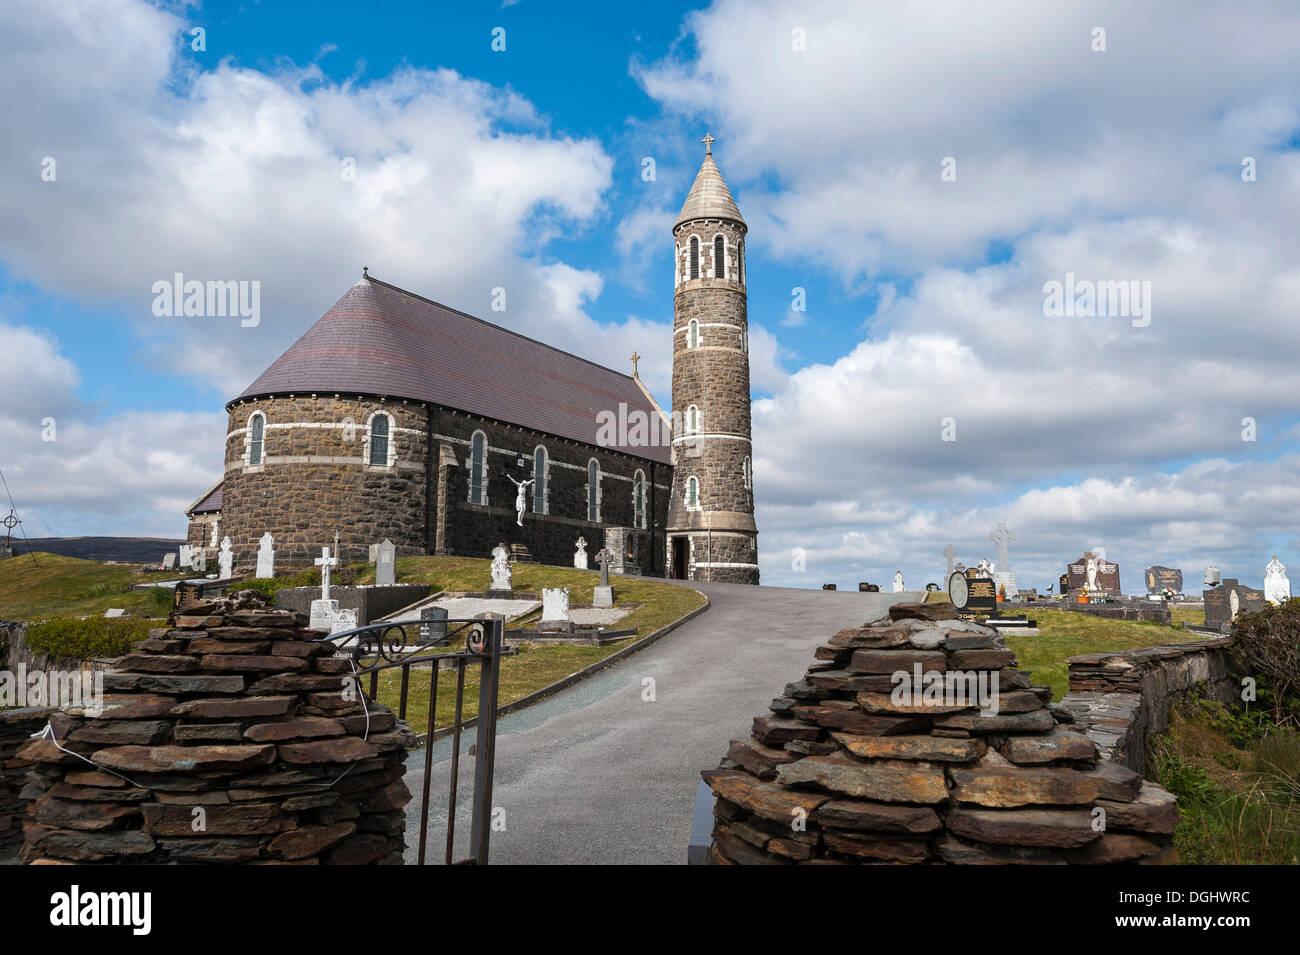 Sacred Heart Catholic Church, Money Beg, County Donegal, Republic of Ireland, Europe - Stock Image